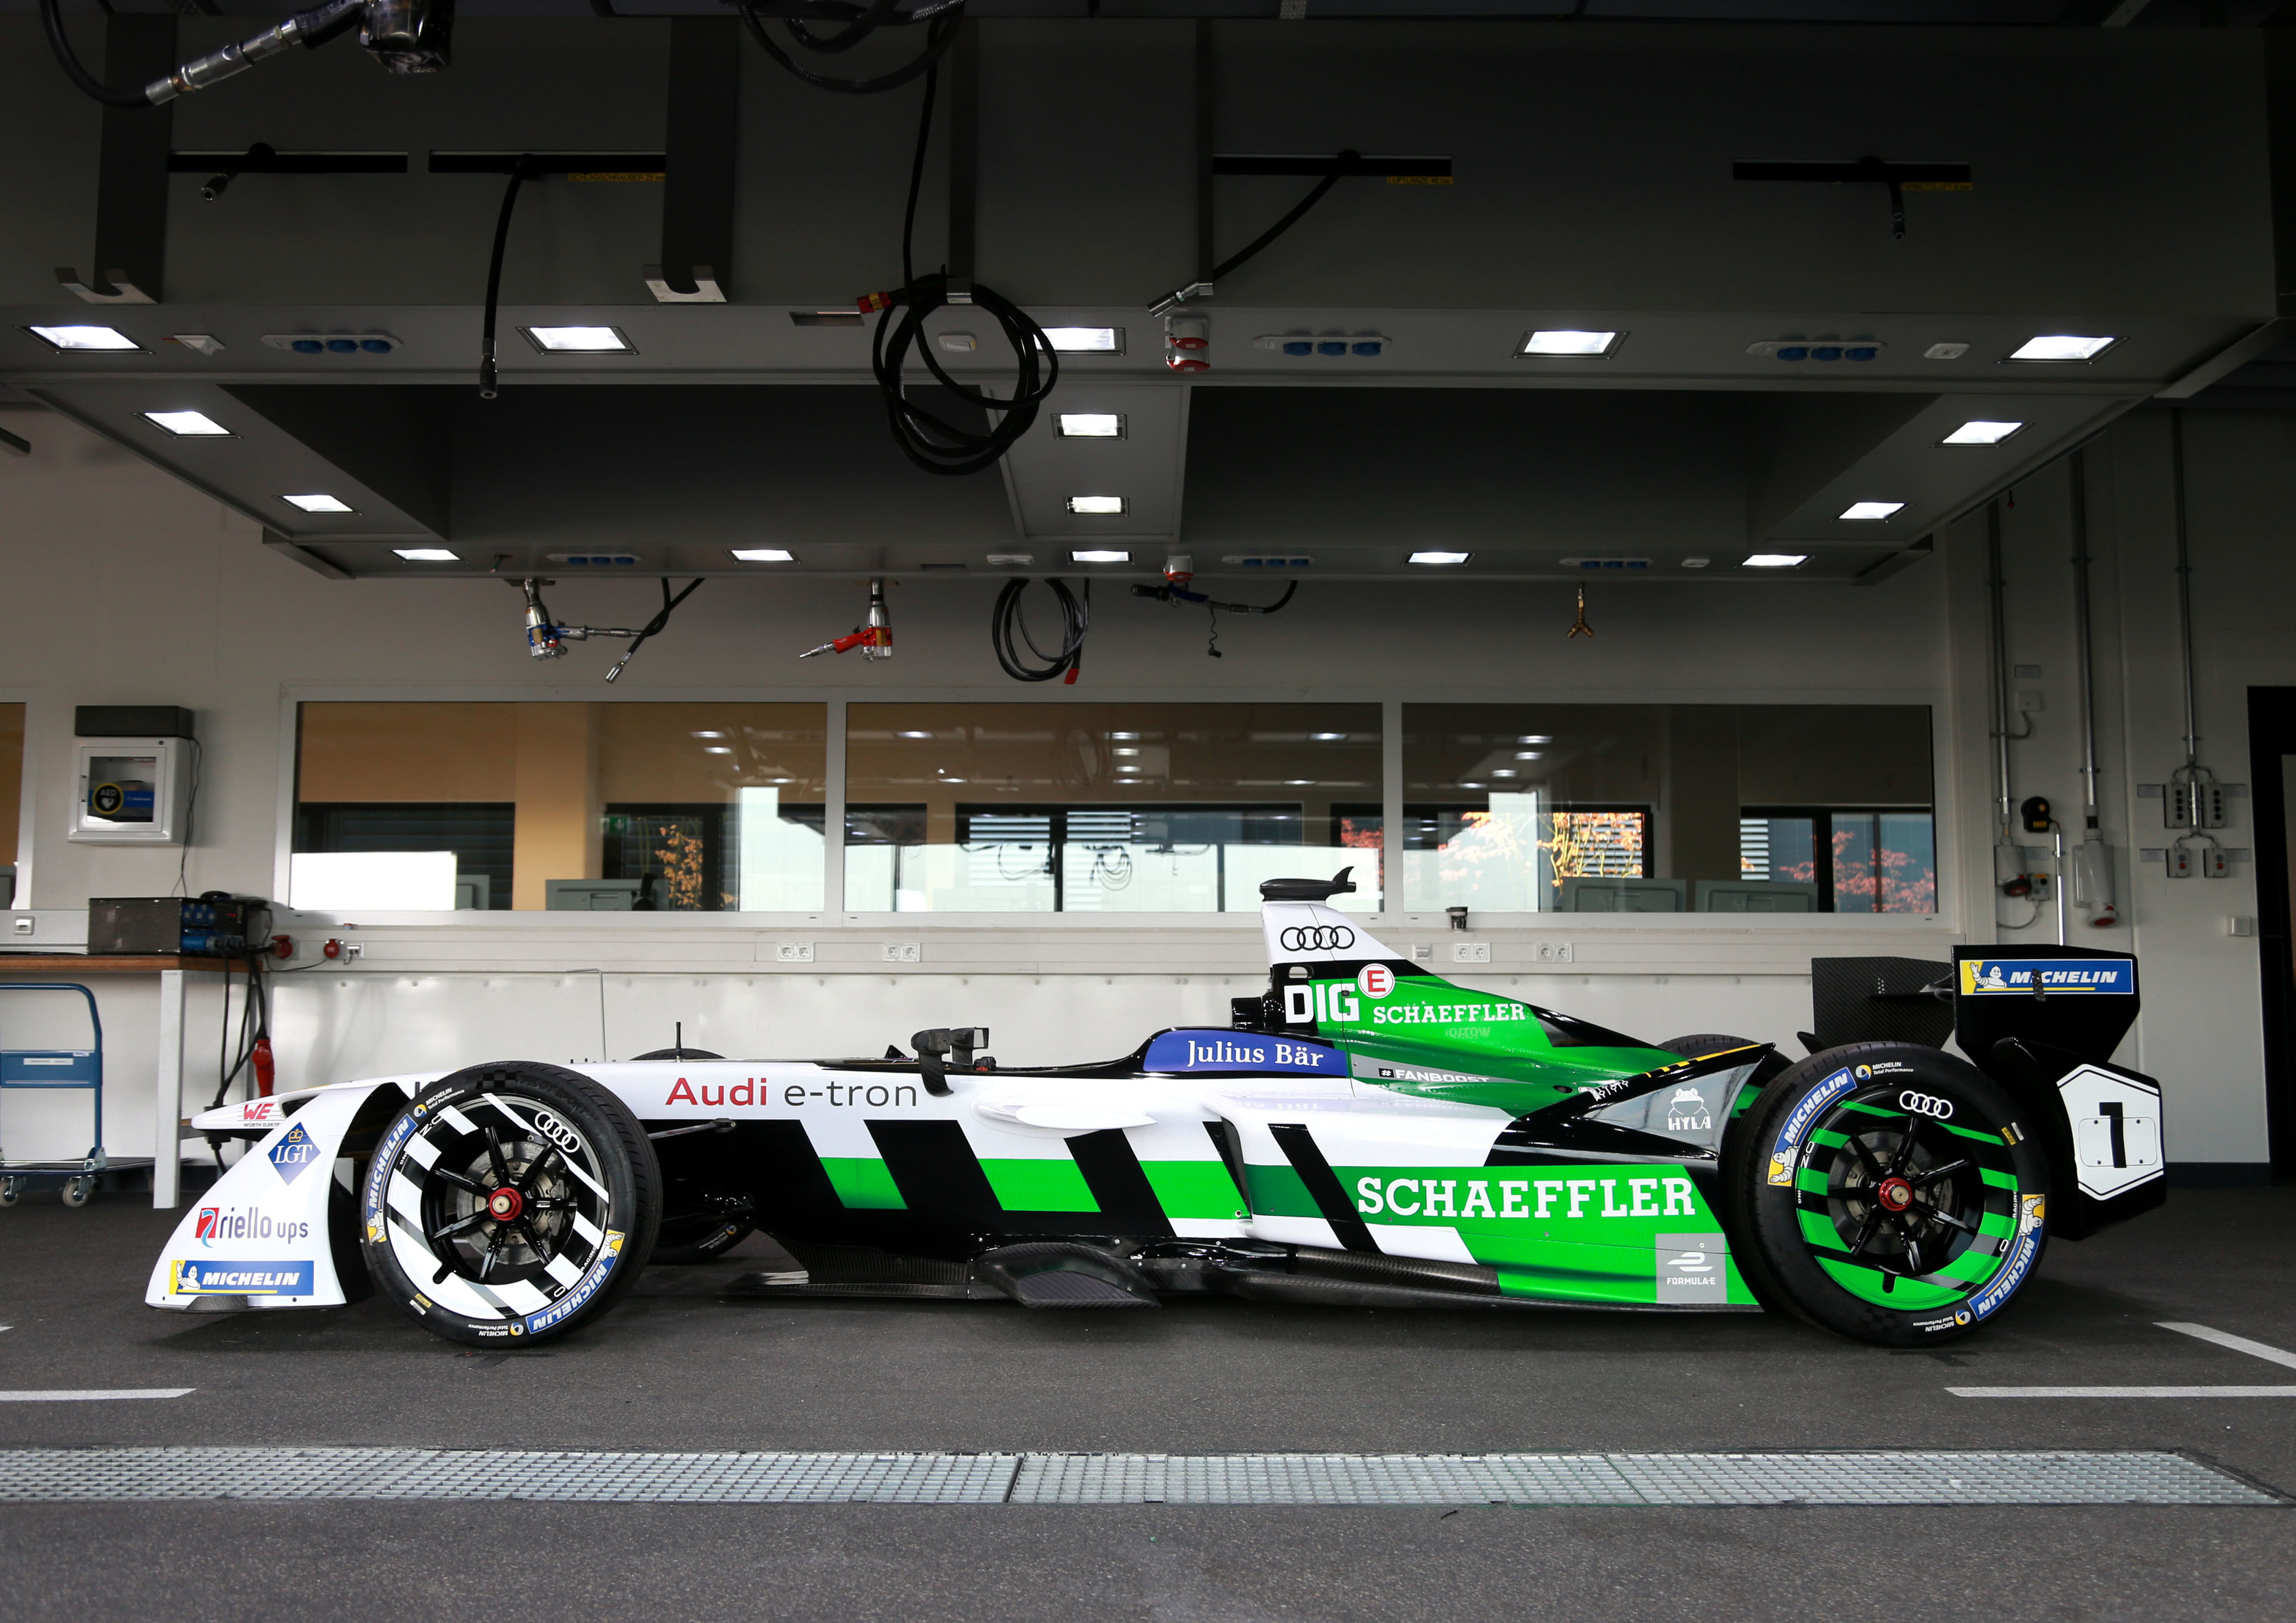 This is Audi's Factory Formula E Fighter